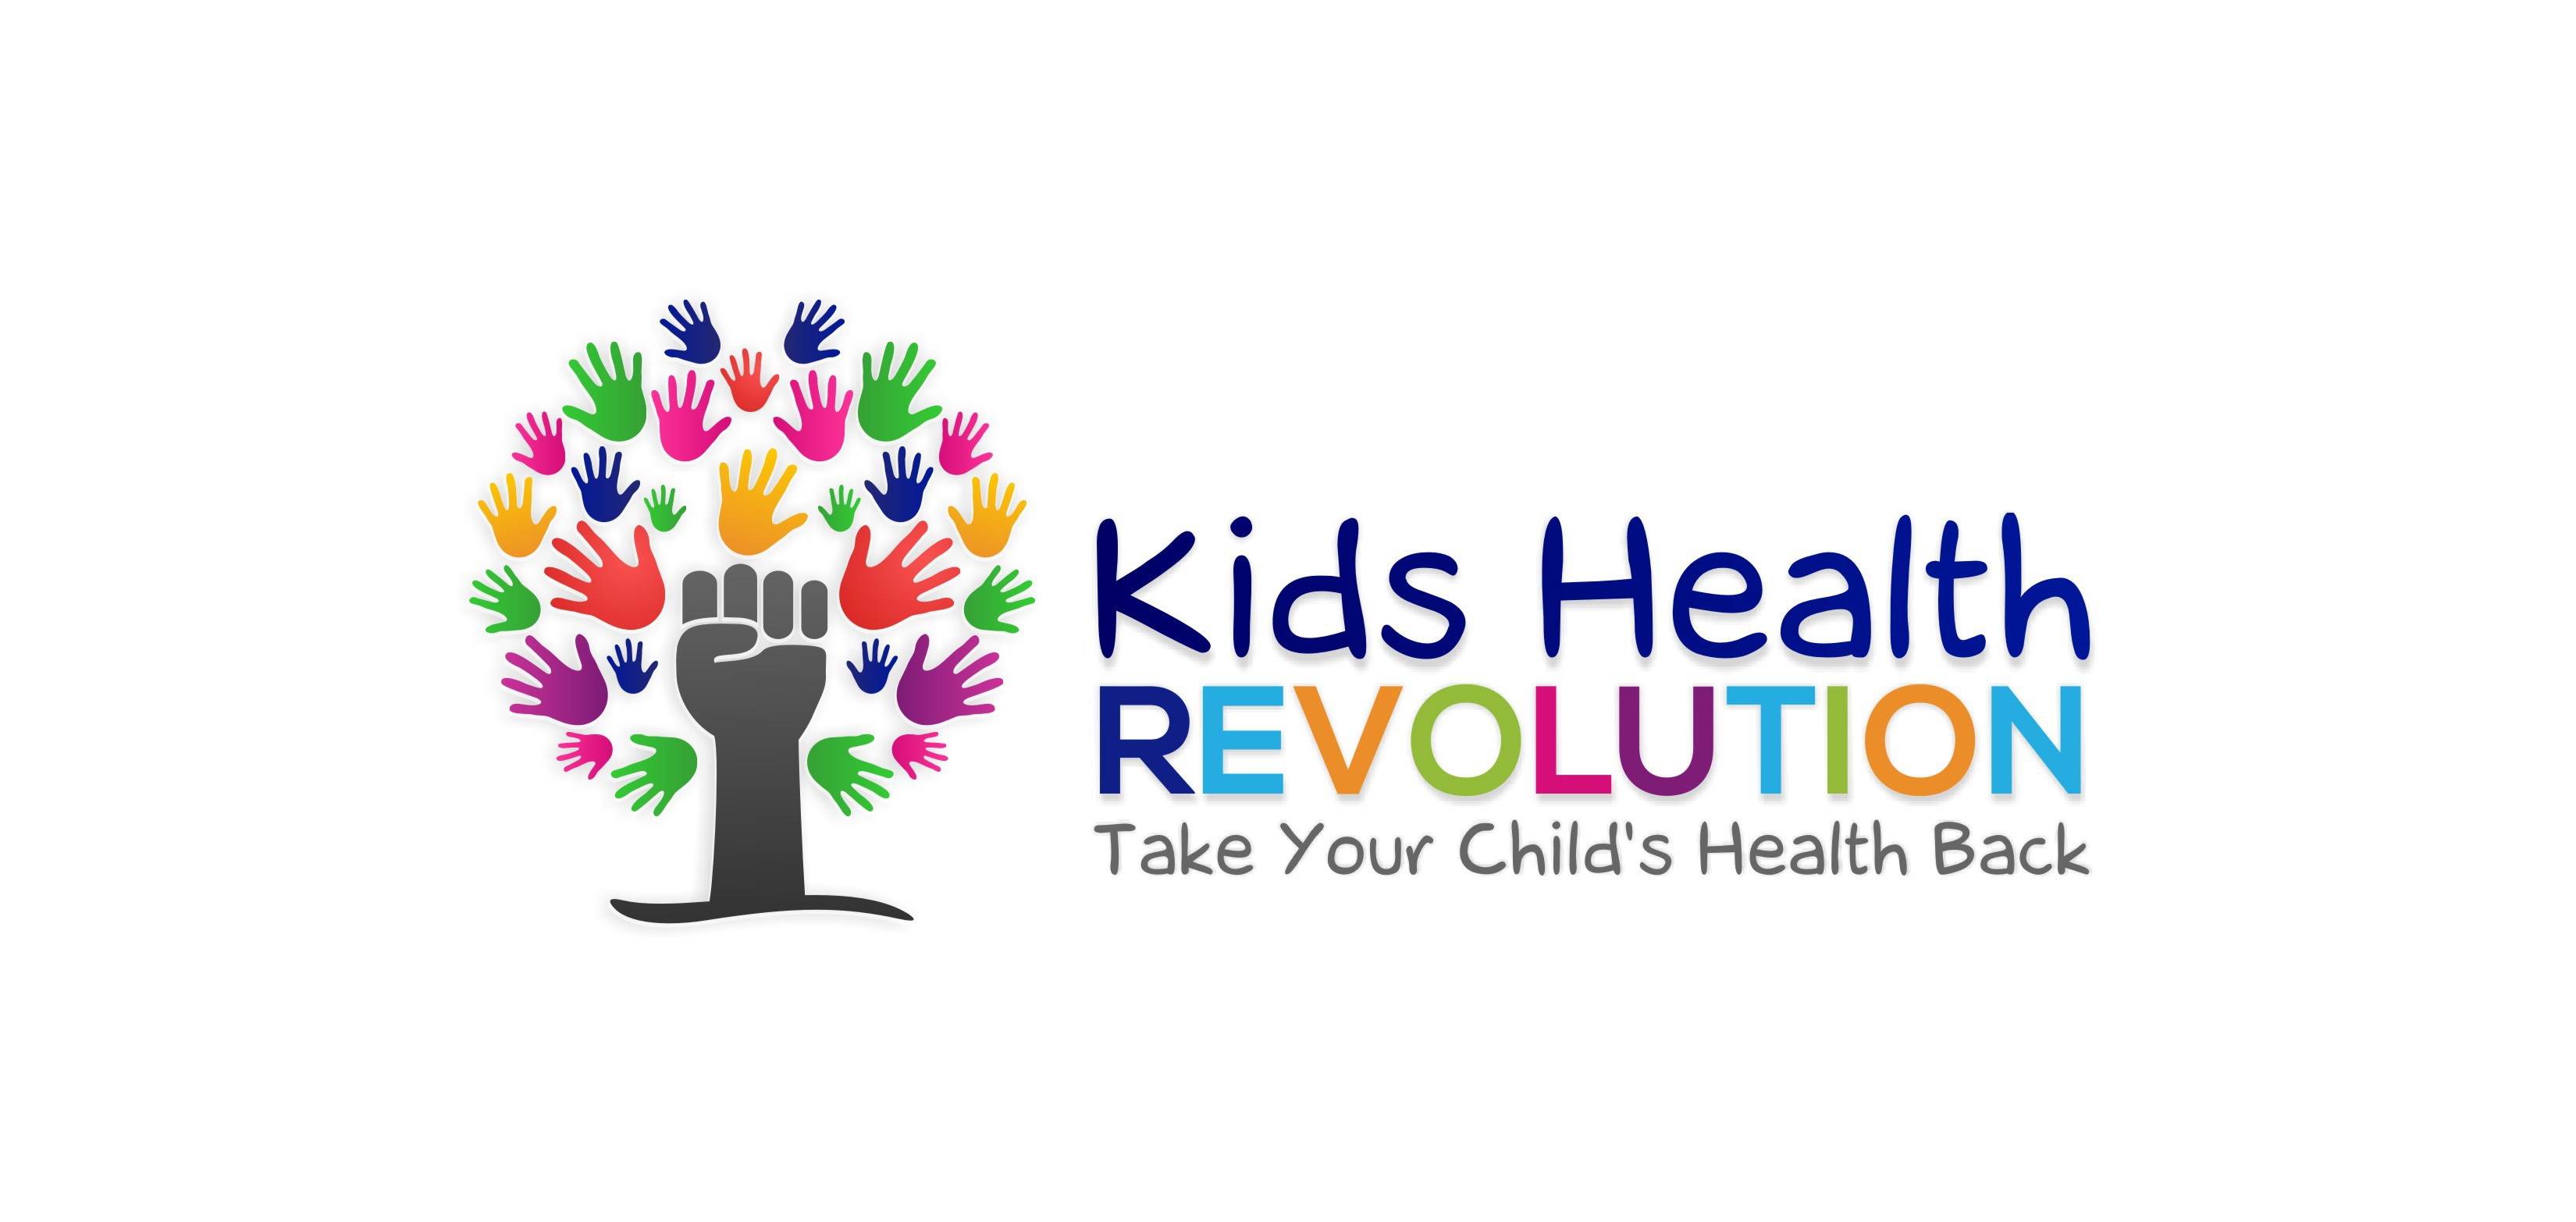 Kid's health revolutionary needs an impactful new logo